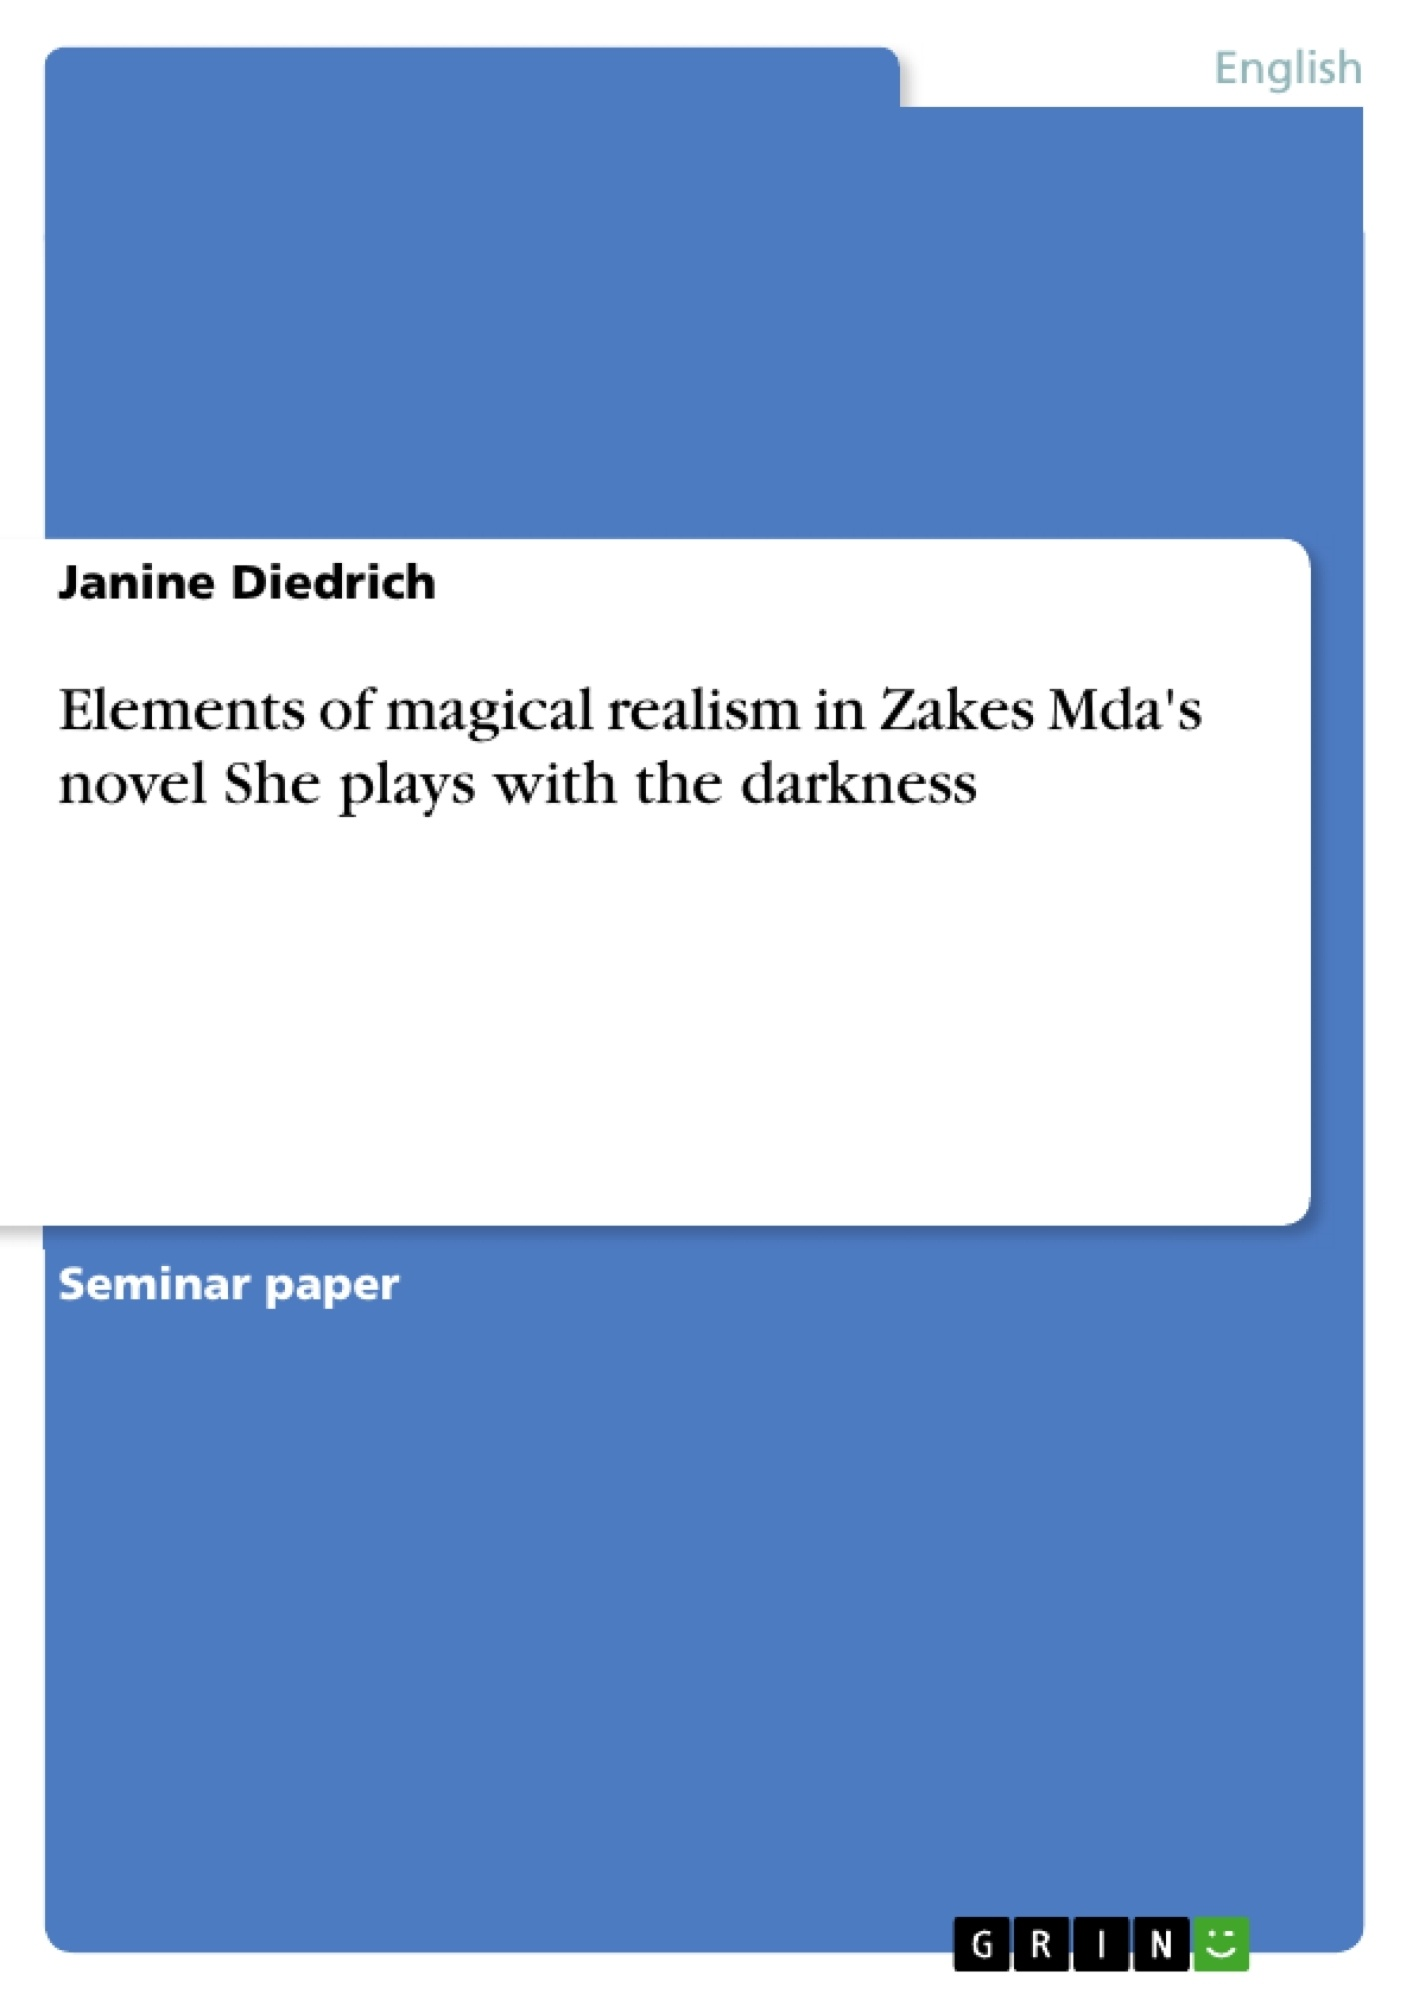 elements of magical realism in zakes mda s novel she plays upload your own papers earn money and win an iphone 7